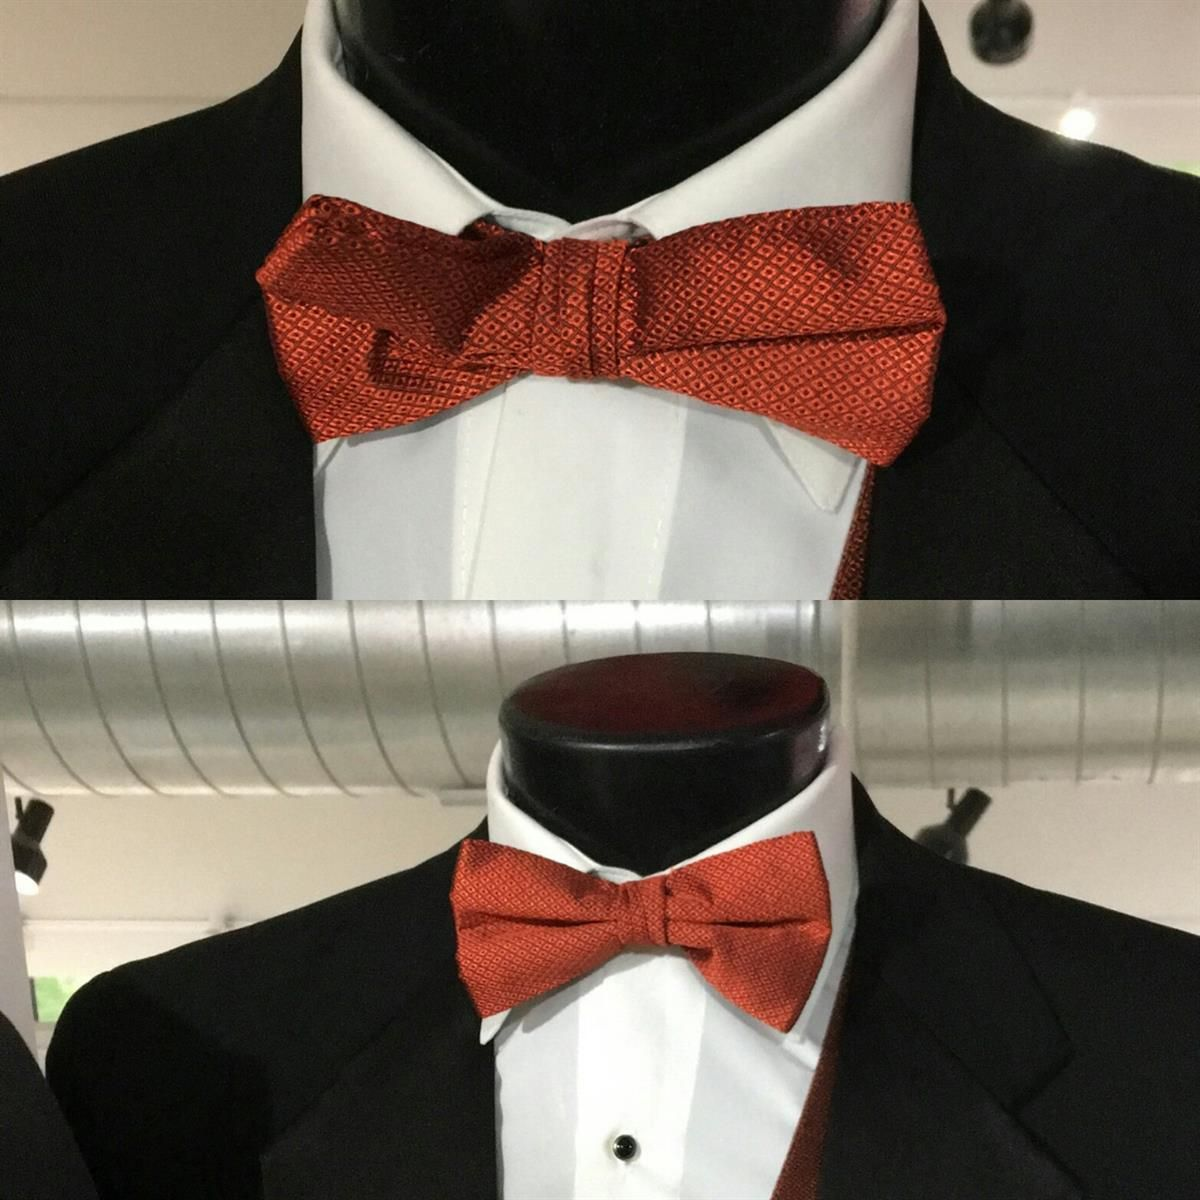 34fb7b0764ed Droopy bowtie? It's on upside down! Flip it over for a perfect bowtie look!  #tuxedotiptuesday #duboisfw